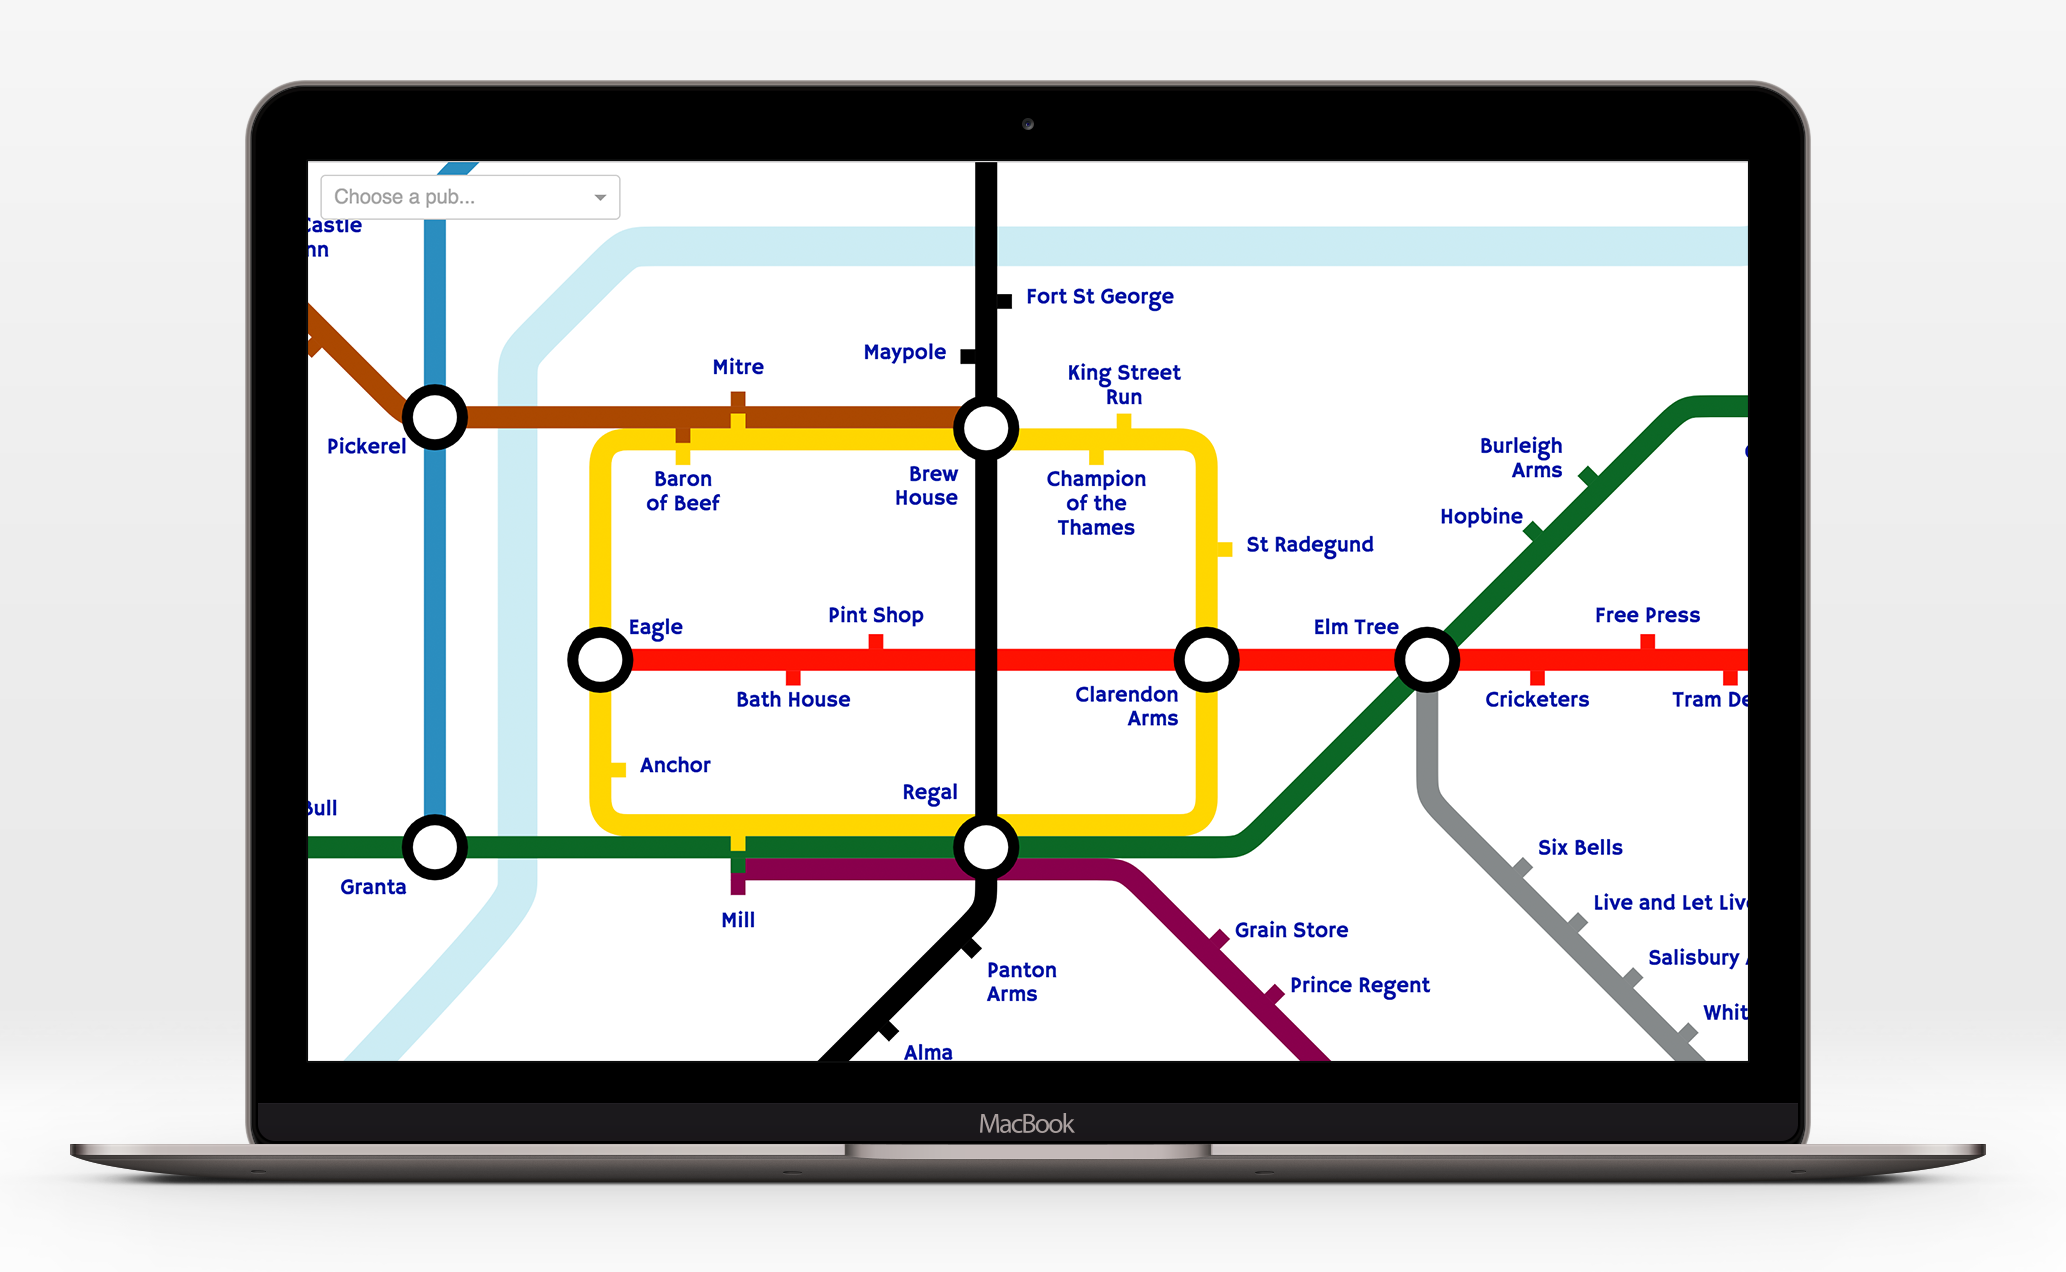 Cambridge Pub Map - Cambridge pubs in the style of the London Underground mapwww.pubmap.co.uk